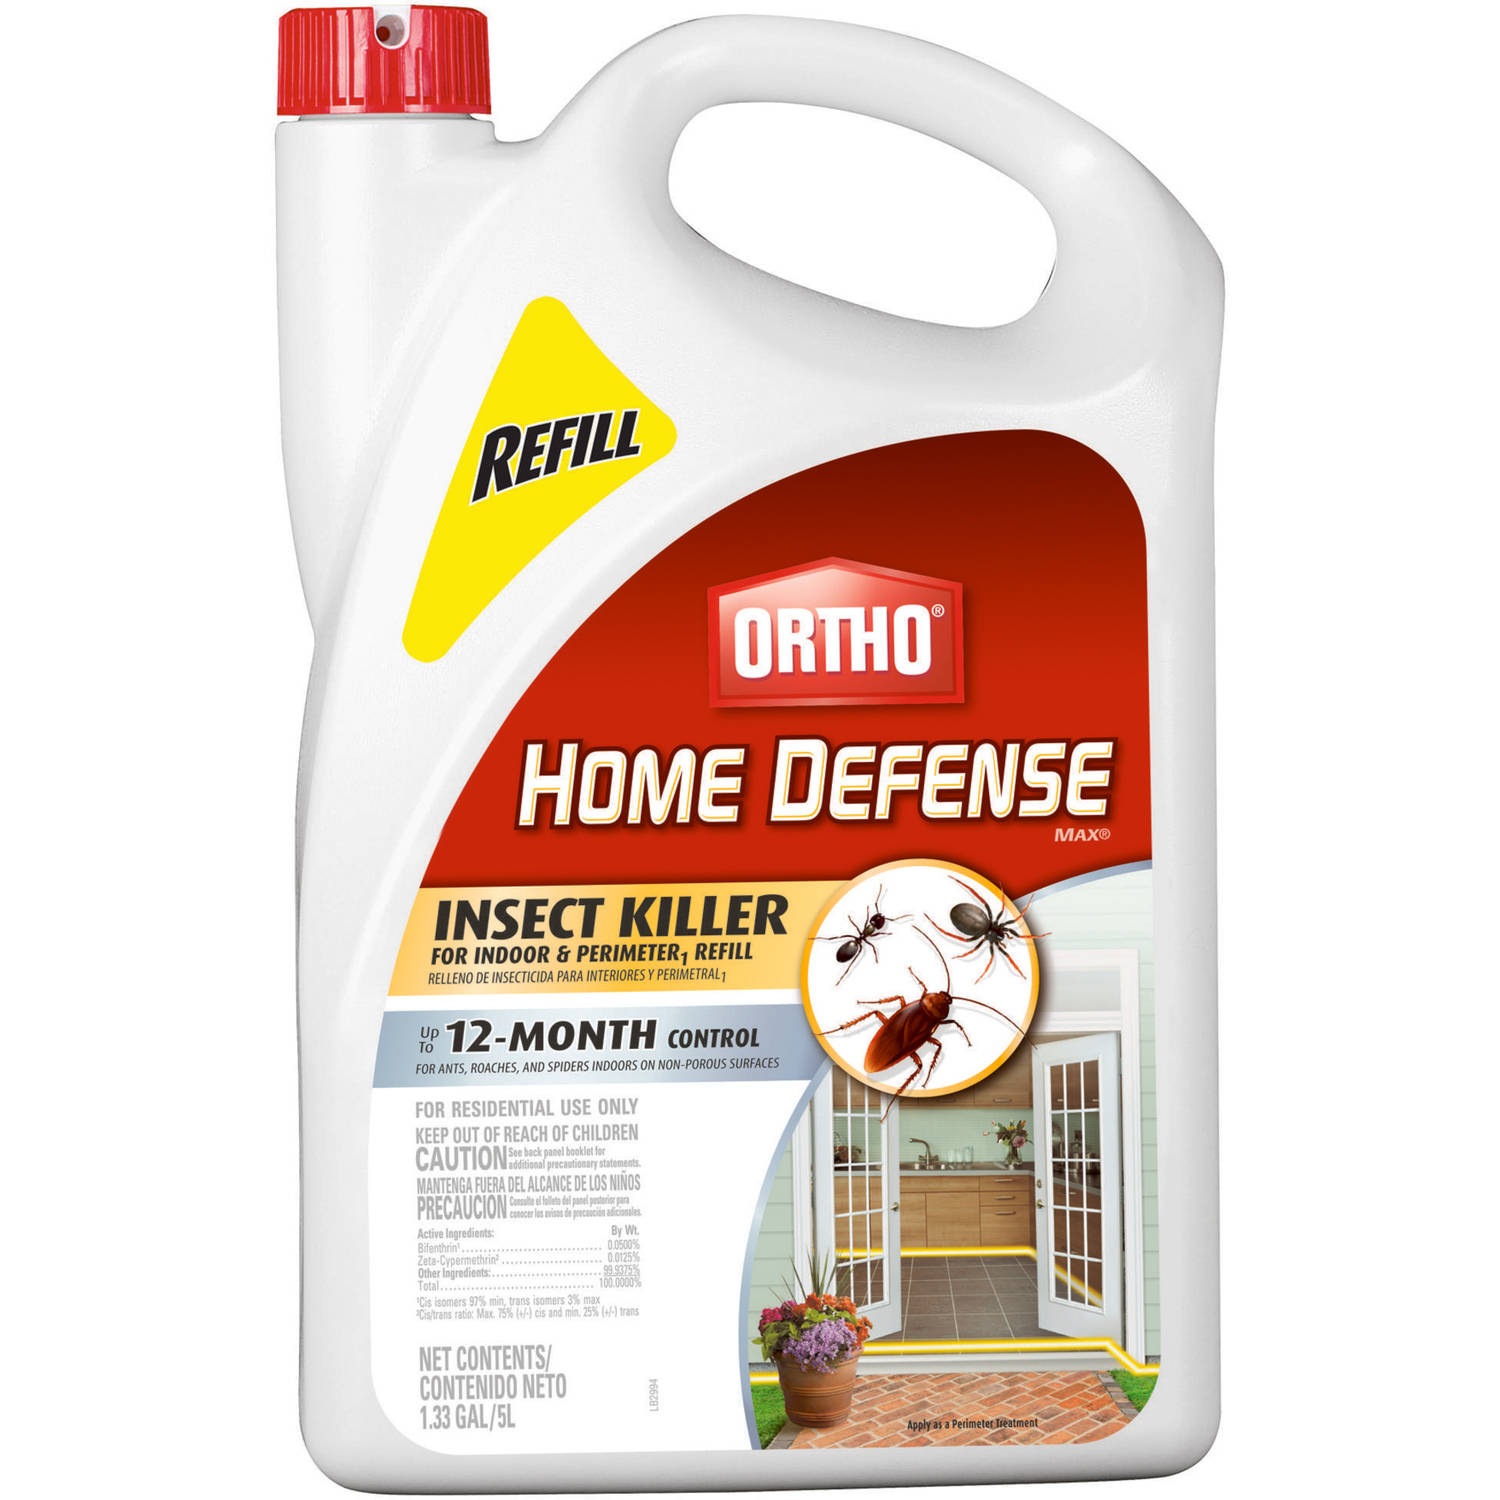 Ortho Home Defense MAX Insect Killer for Indoor & Perimeter Ready-to-Use Refill, 1.33 gal